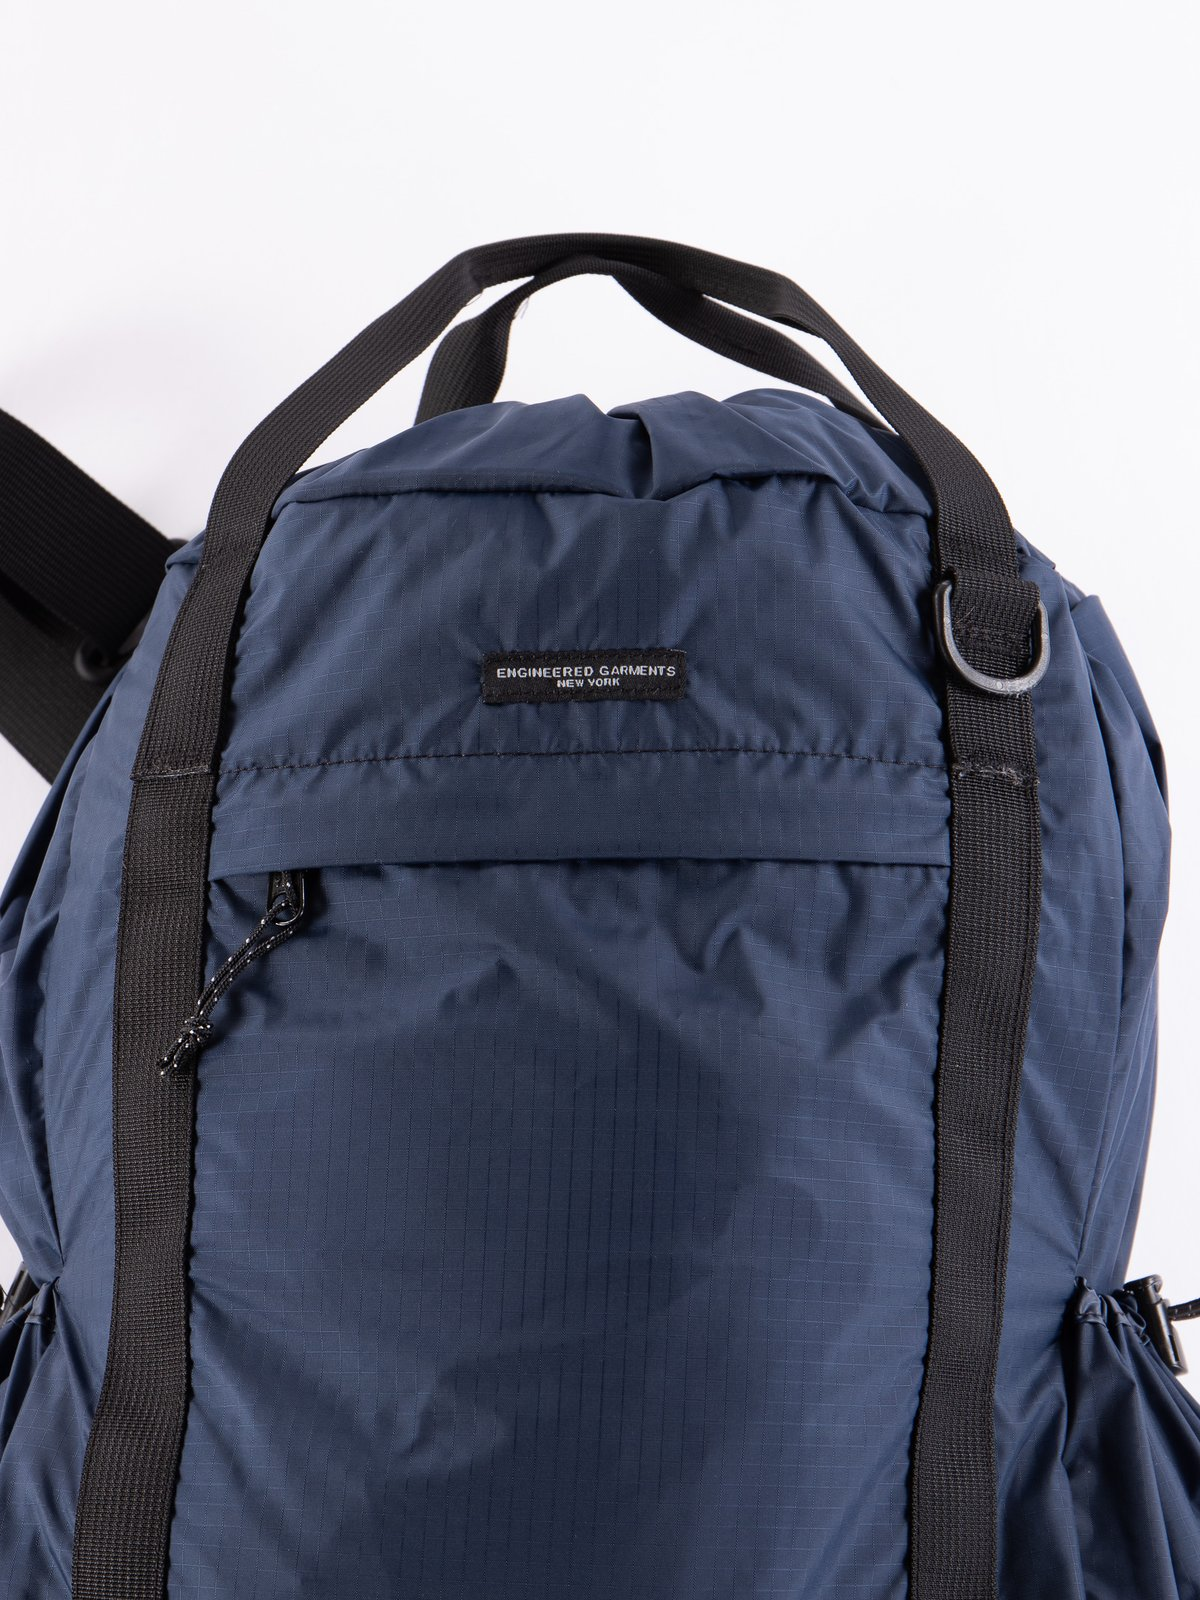 Navy Nylon Ripstop UL 3 Way Bag - Image 2